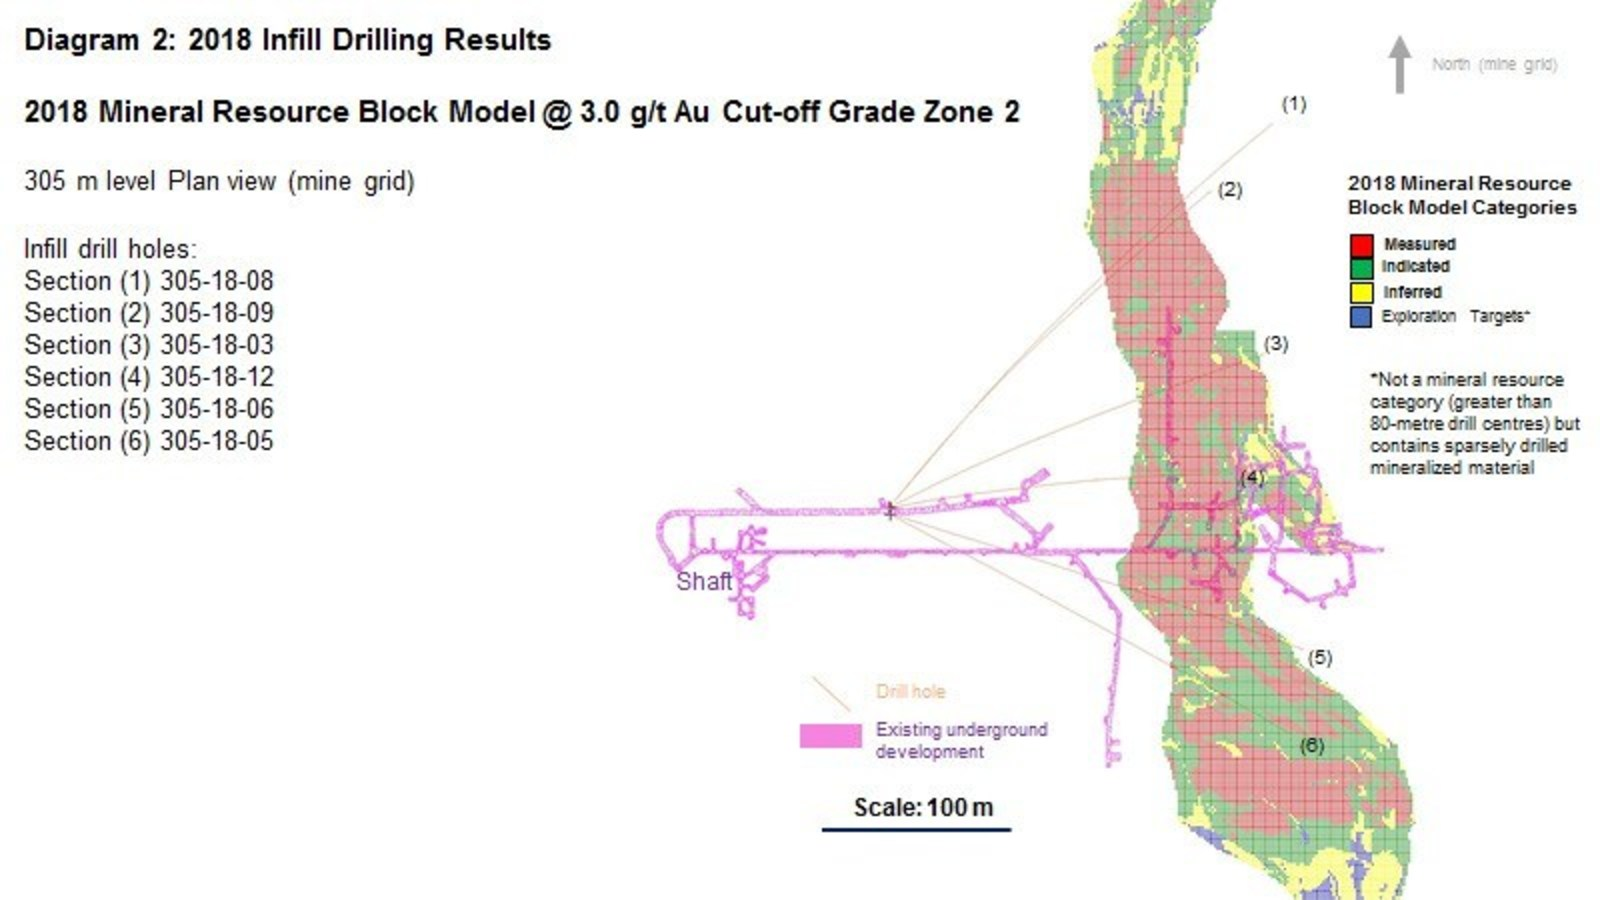 Diagram 2 : 2018 Infill Drilling Results - 2018 Mineral Resource Block Model @ 3.0 g/t Au Cut-off Grade Zone 2